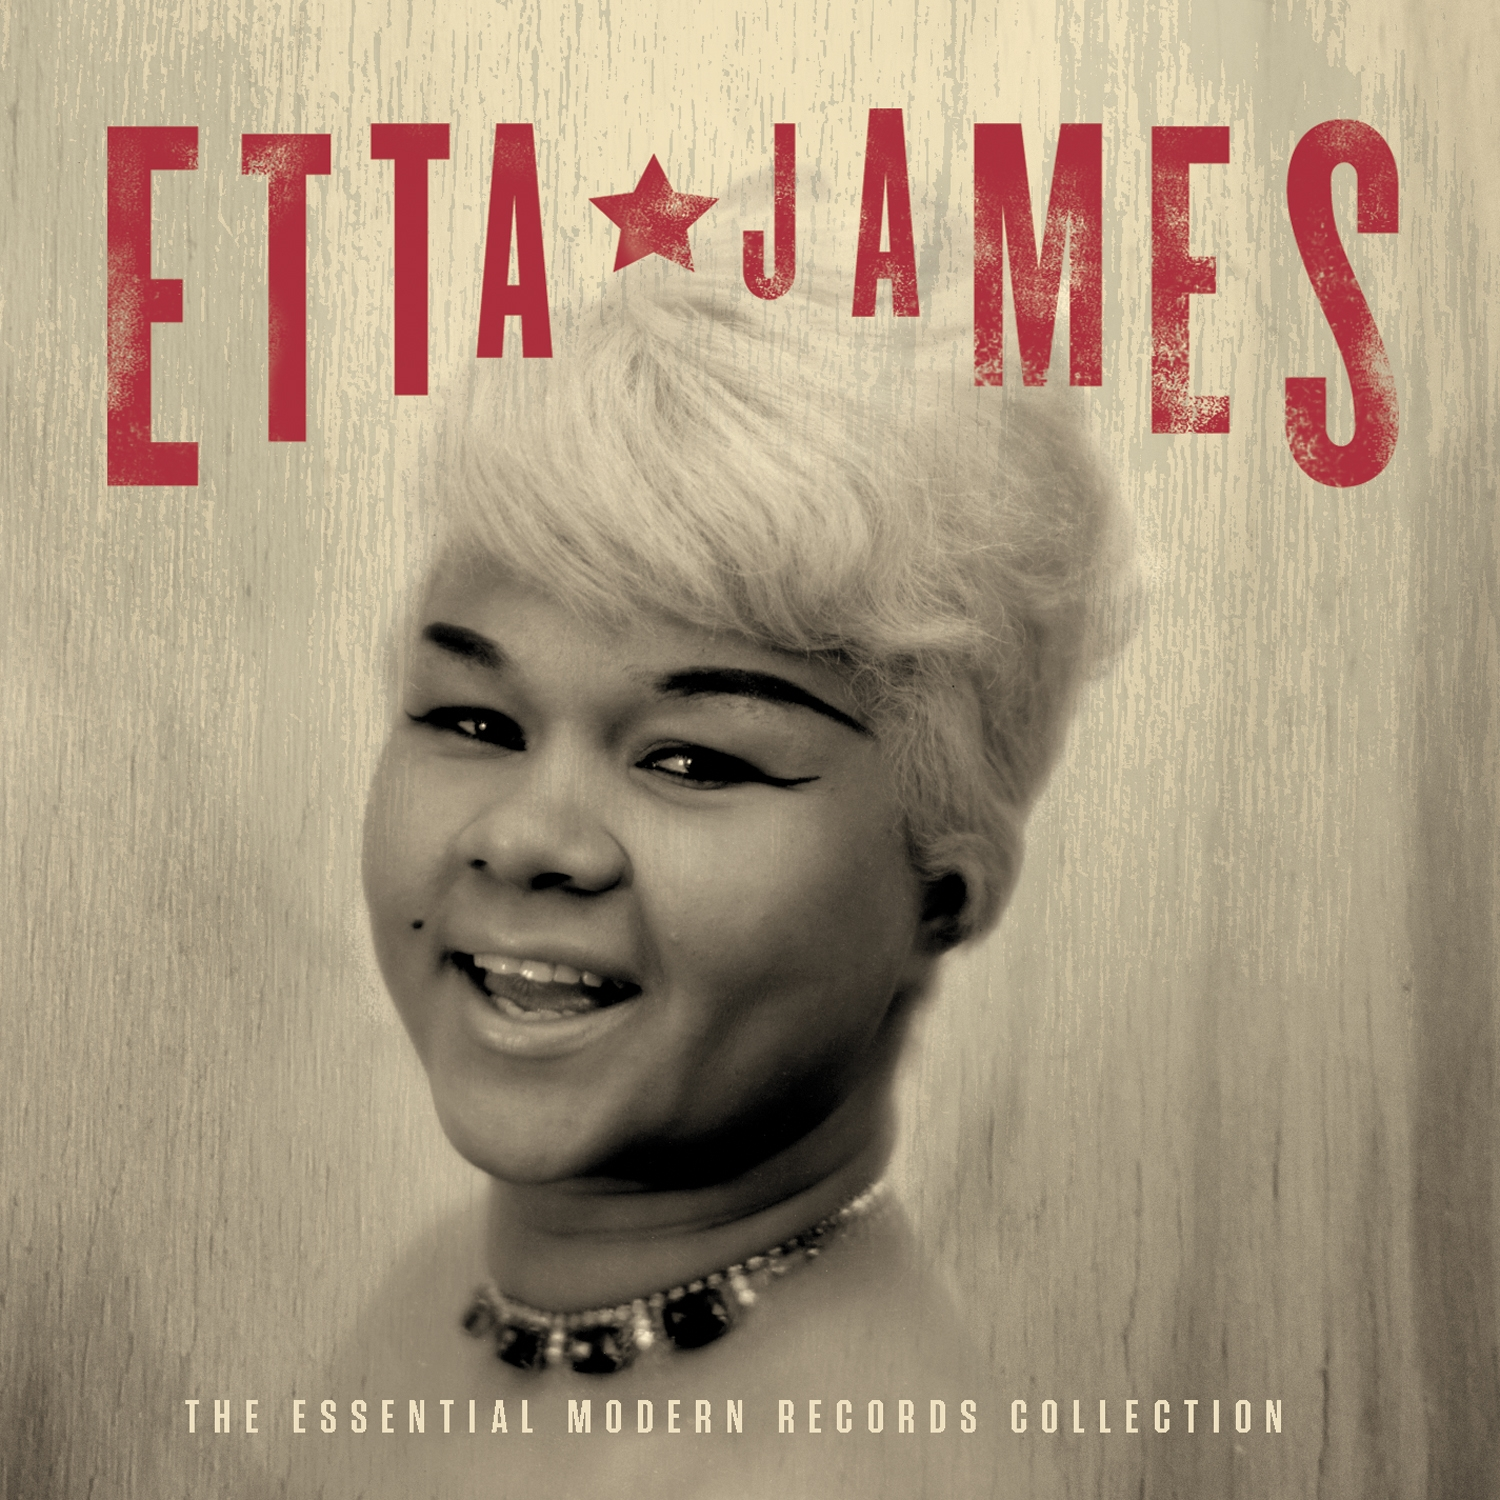 Image Etta James The Essential Modern Records Collection